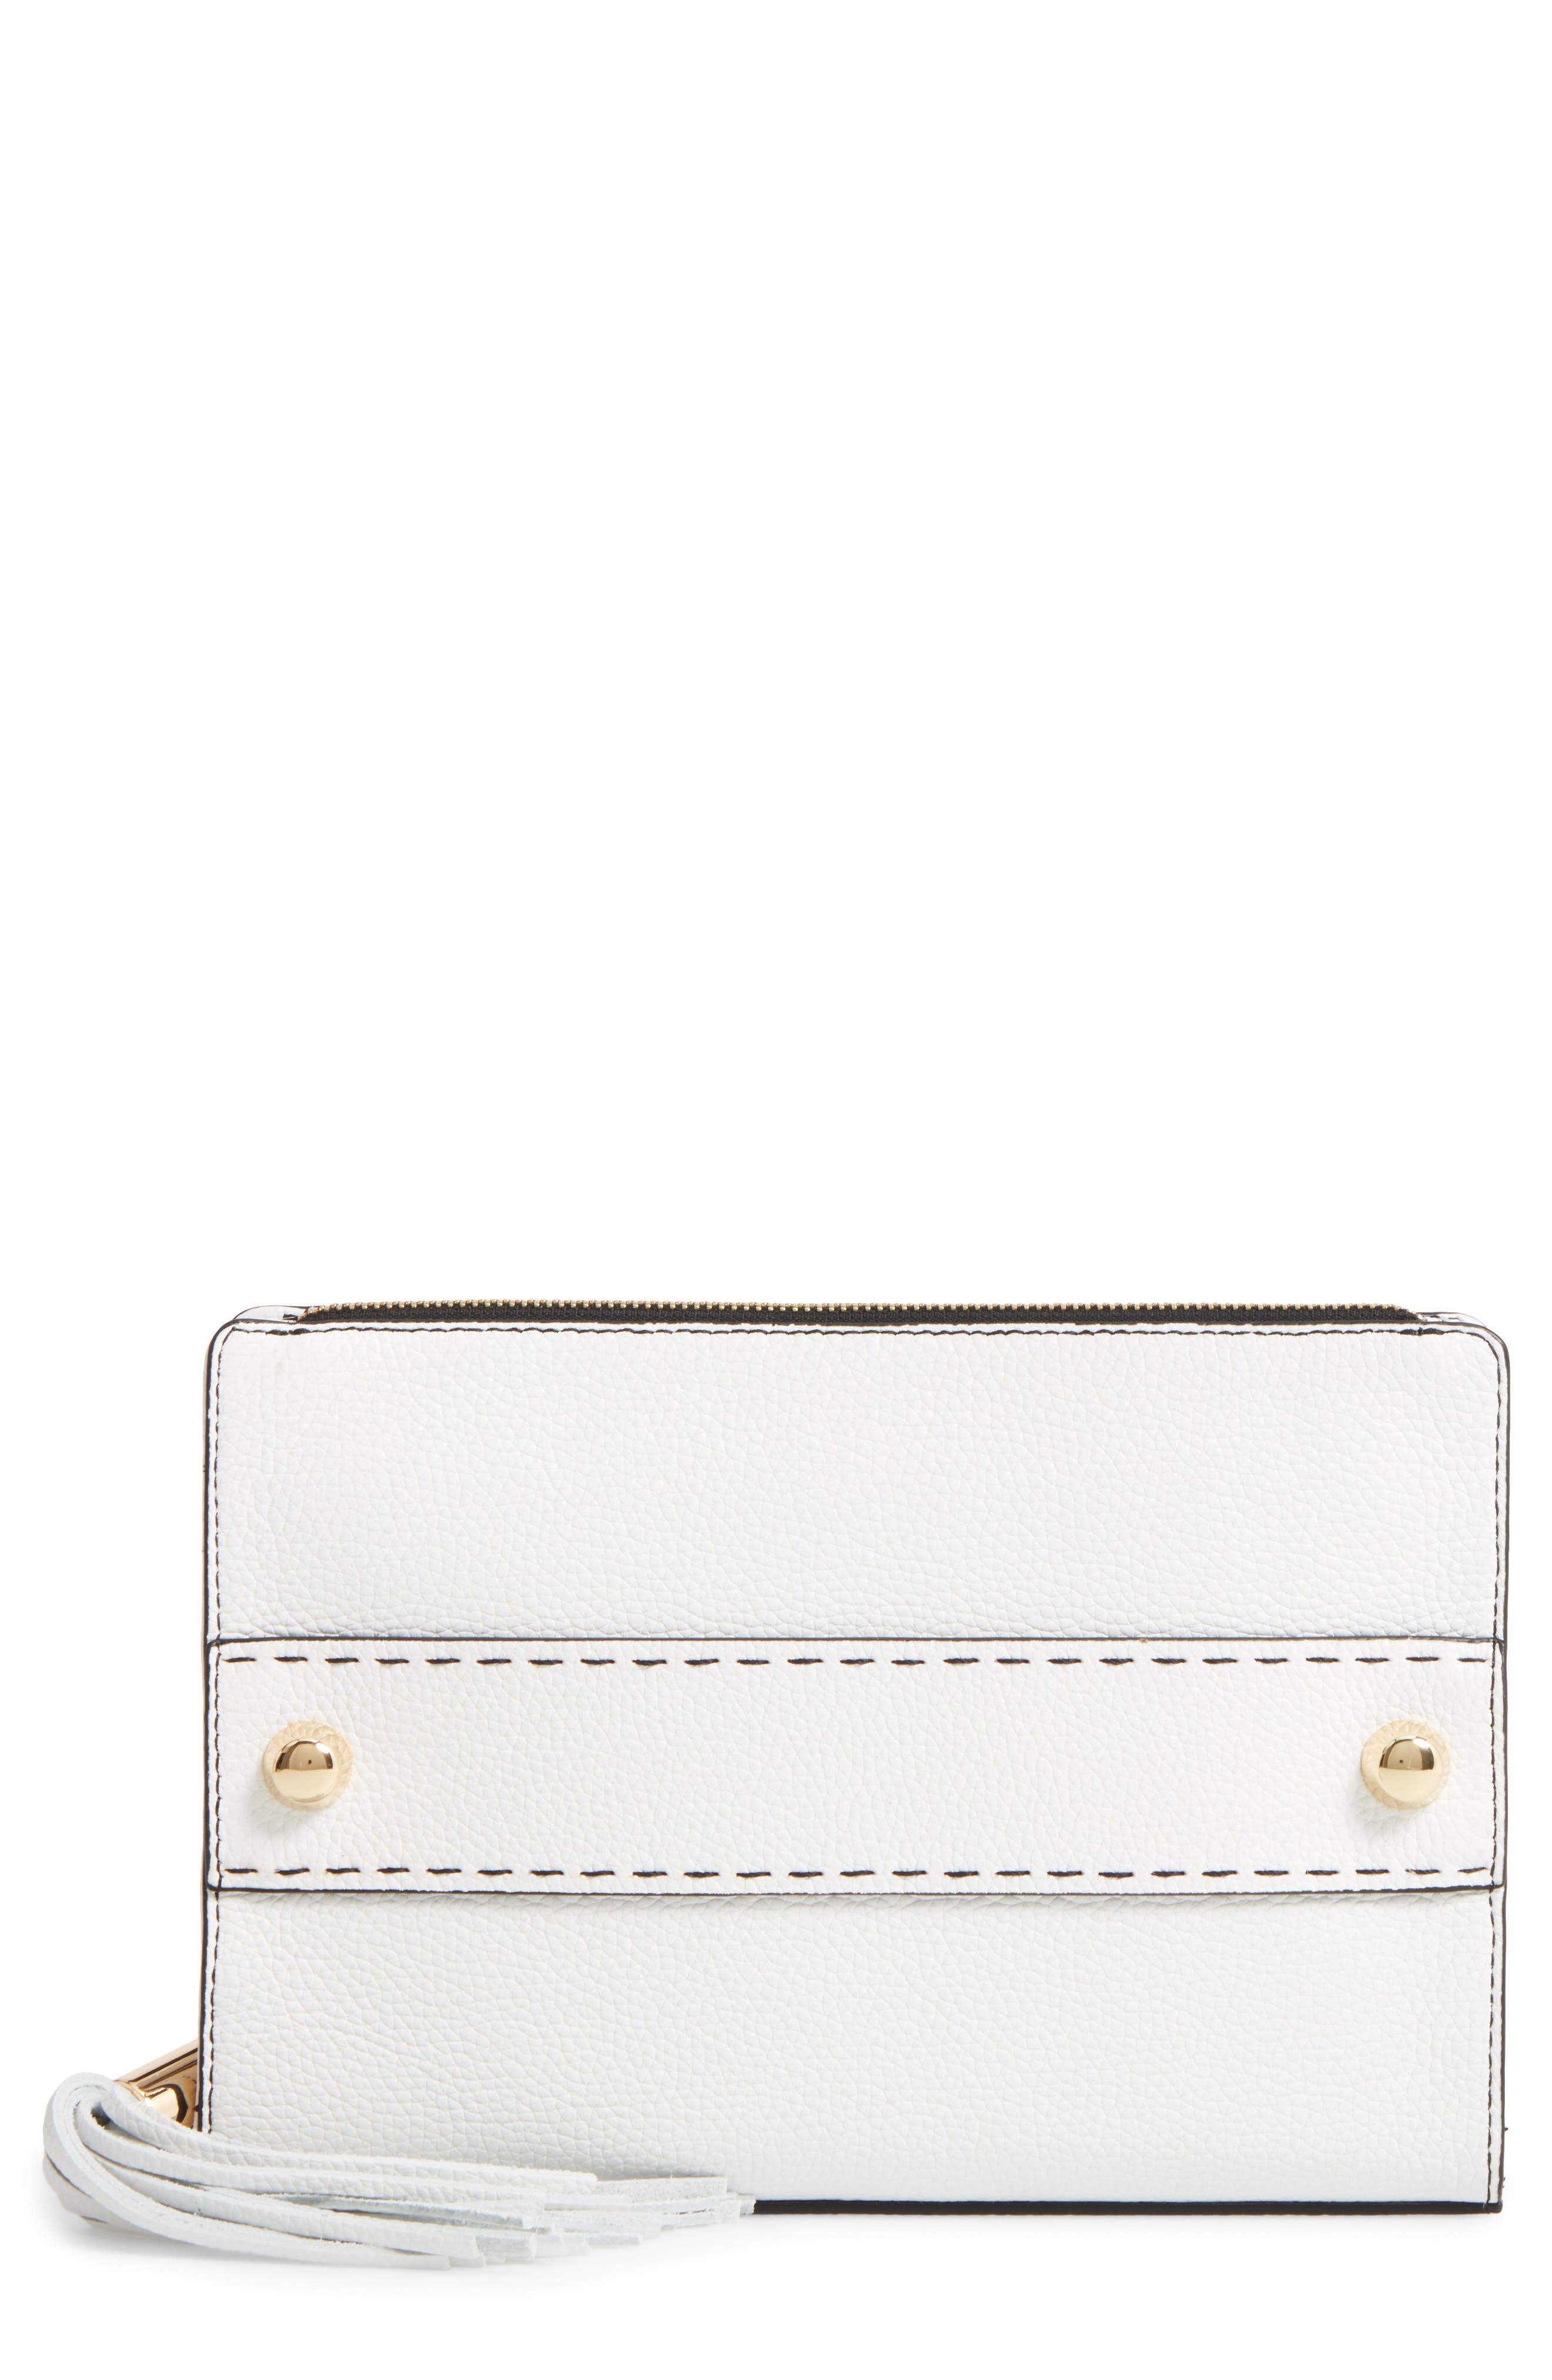 Astor Leather Clutch,                             Main thumbnail 1, color,                             White